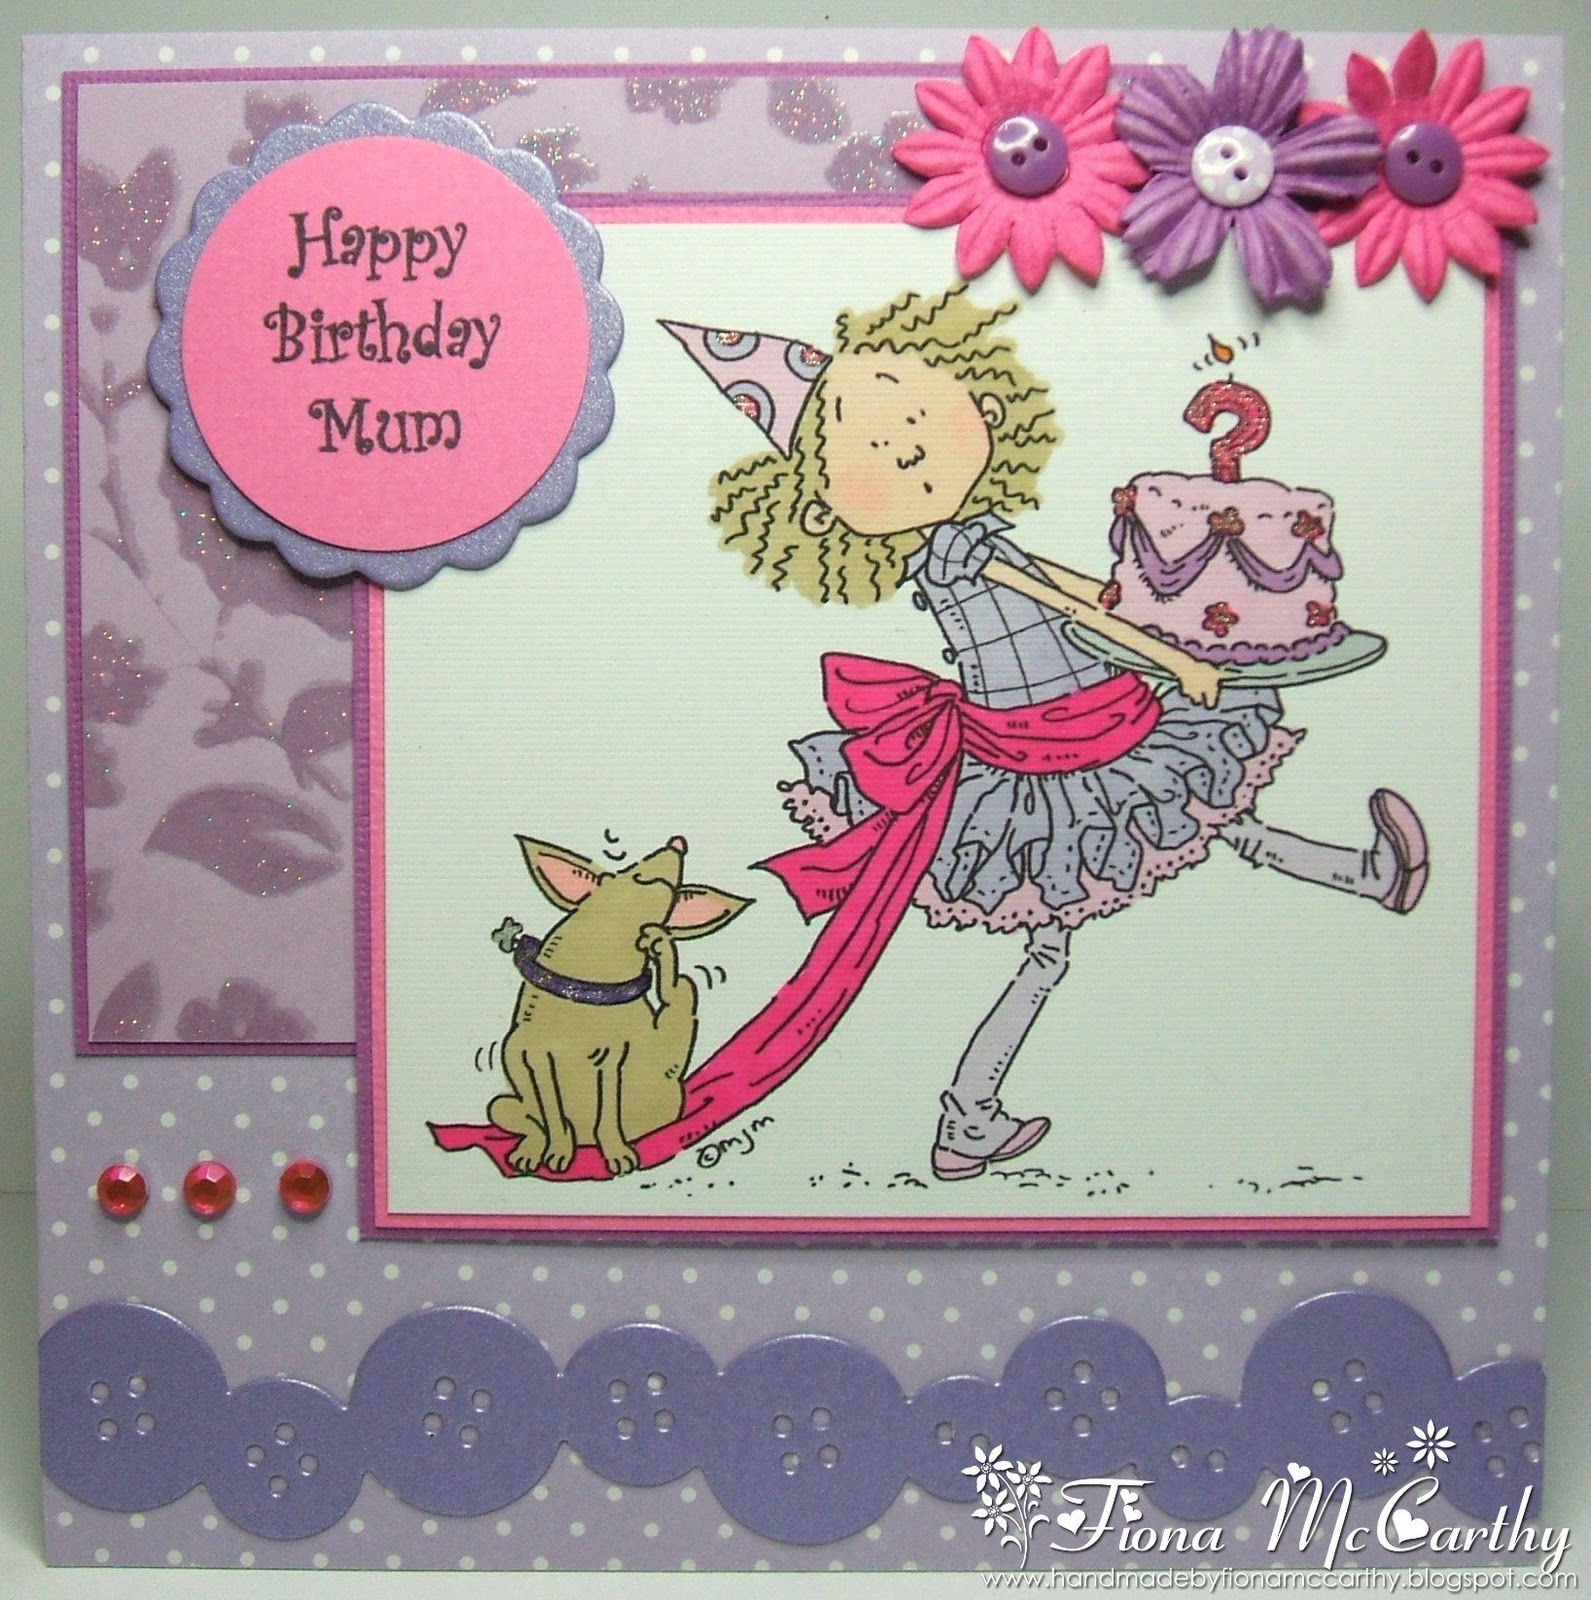 Homemade Birthday Card Ideas For Mom From Daughter